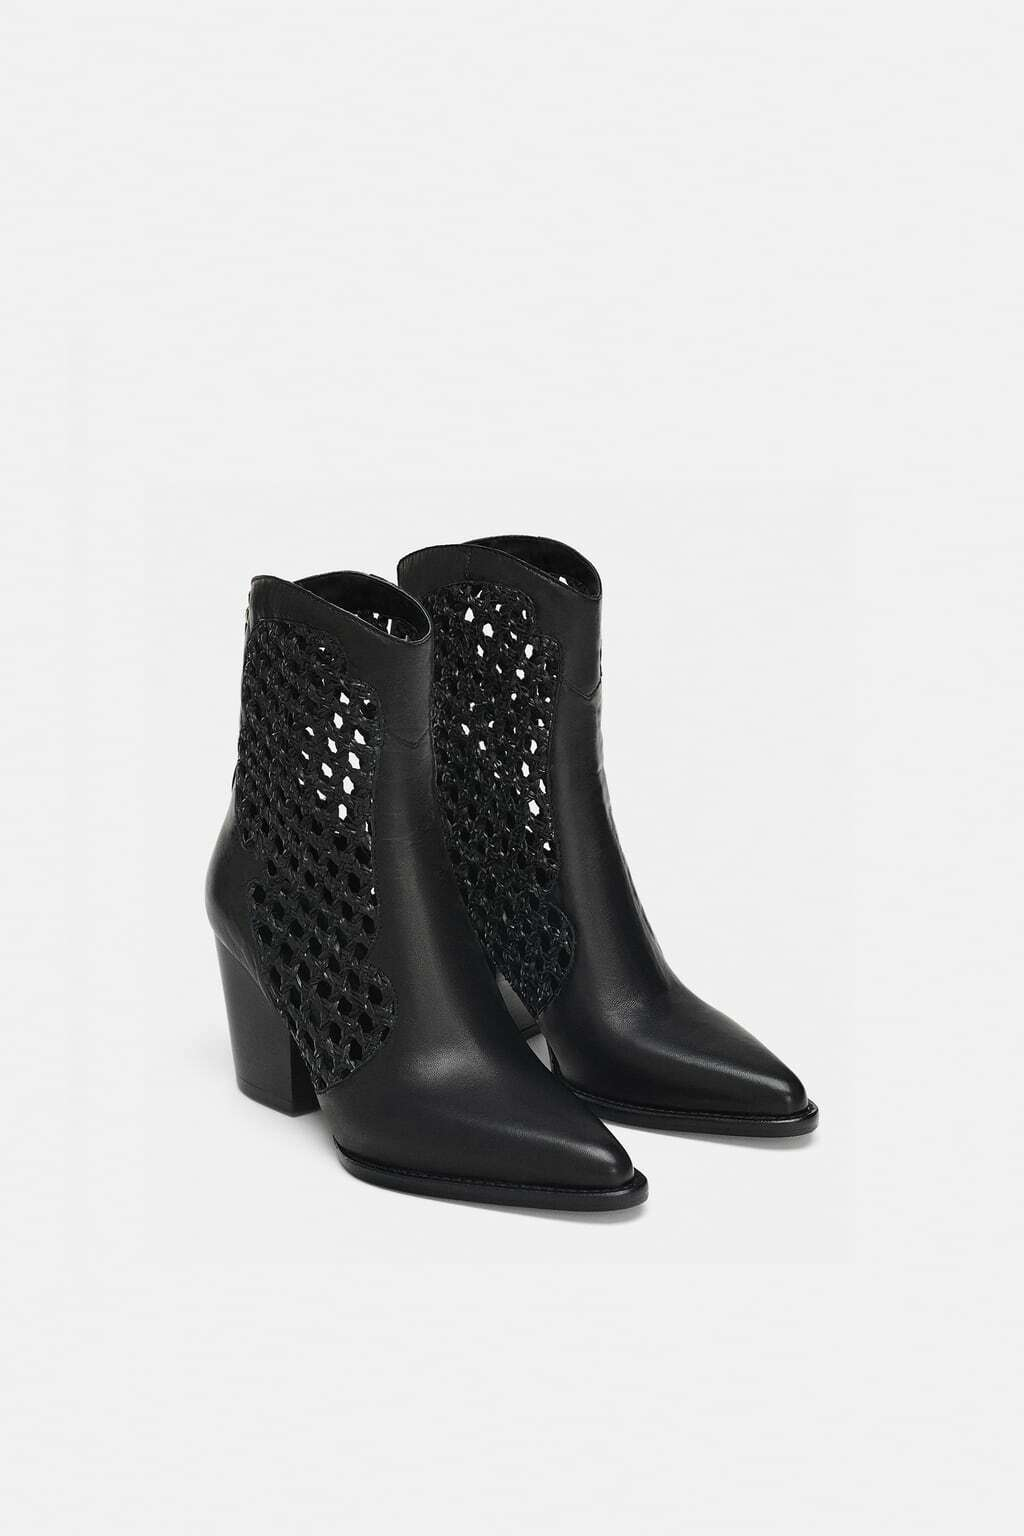 ZARA OPEN WEAVE COWBOY ANKLE BOOTS BEAUTIFUL BLACK SZ US US US 10 EUR 41 NEW dfb855